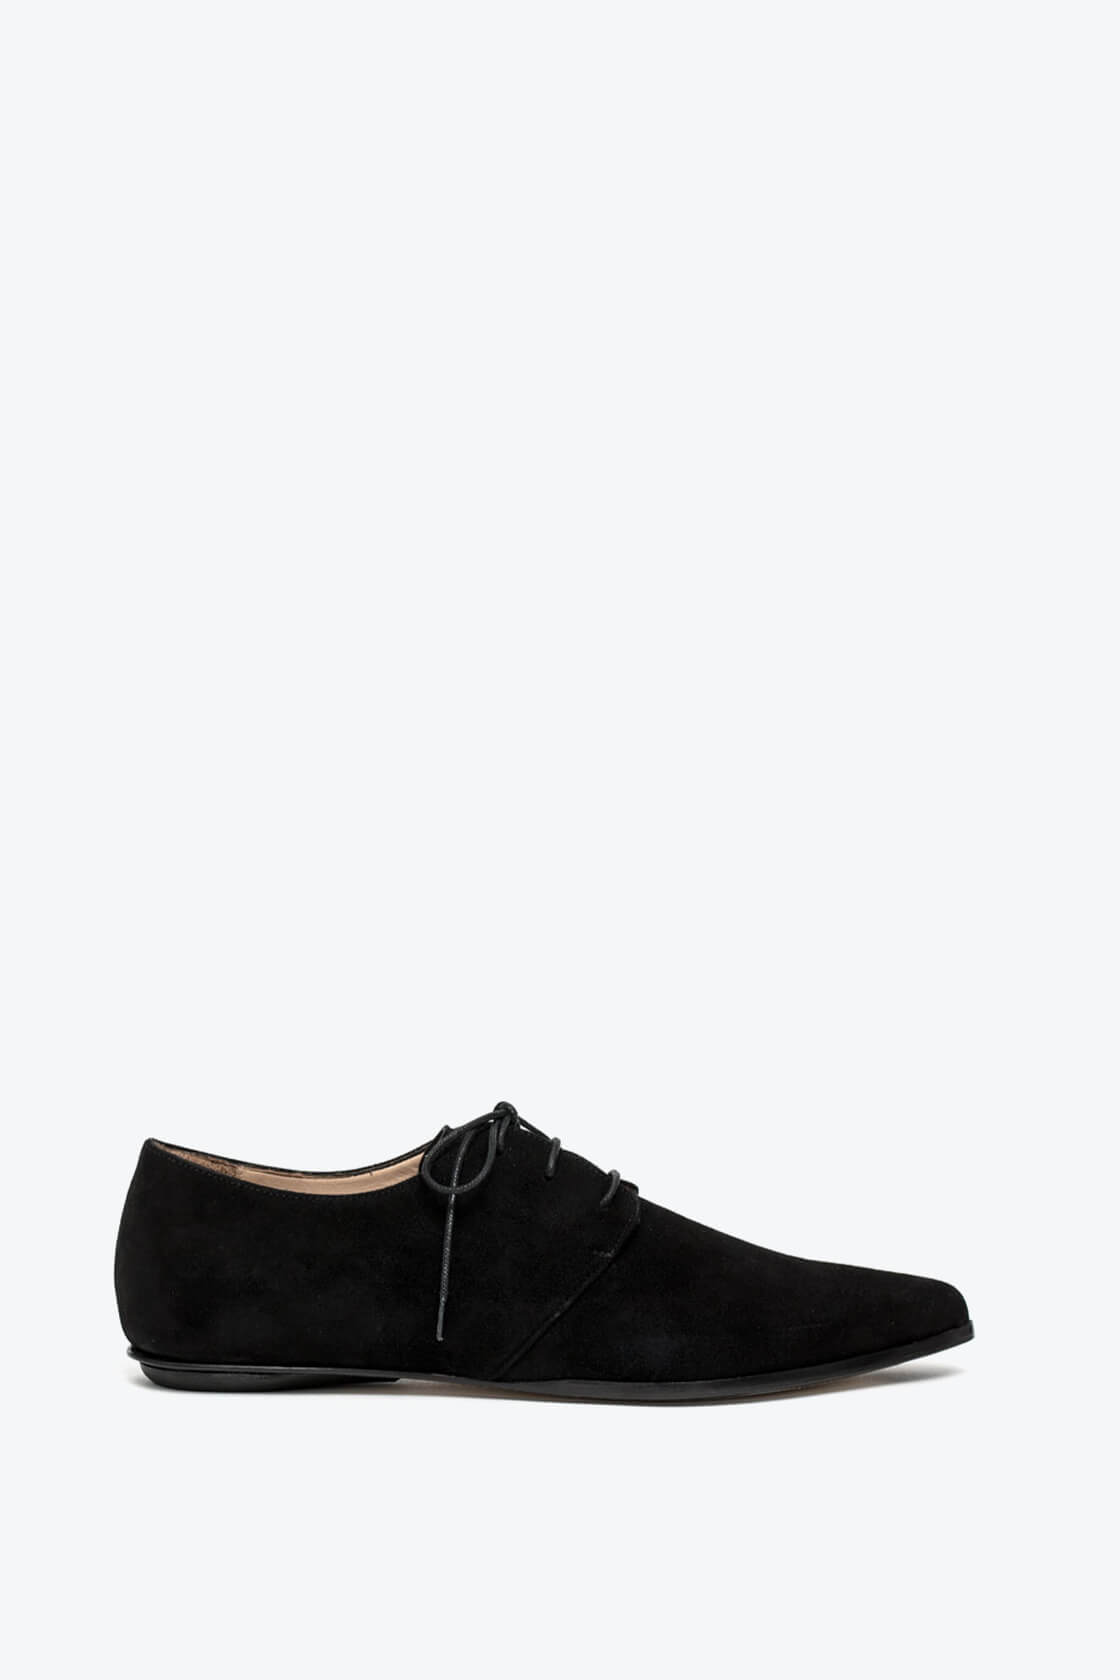 EJK0000033 Renee derby shoes black nabuk 1